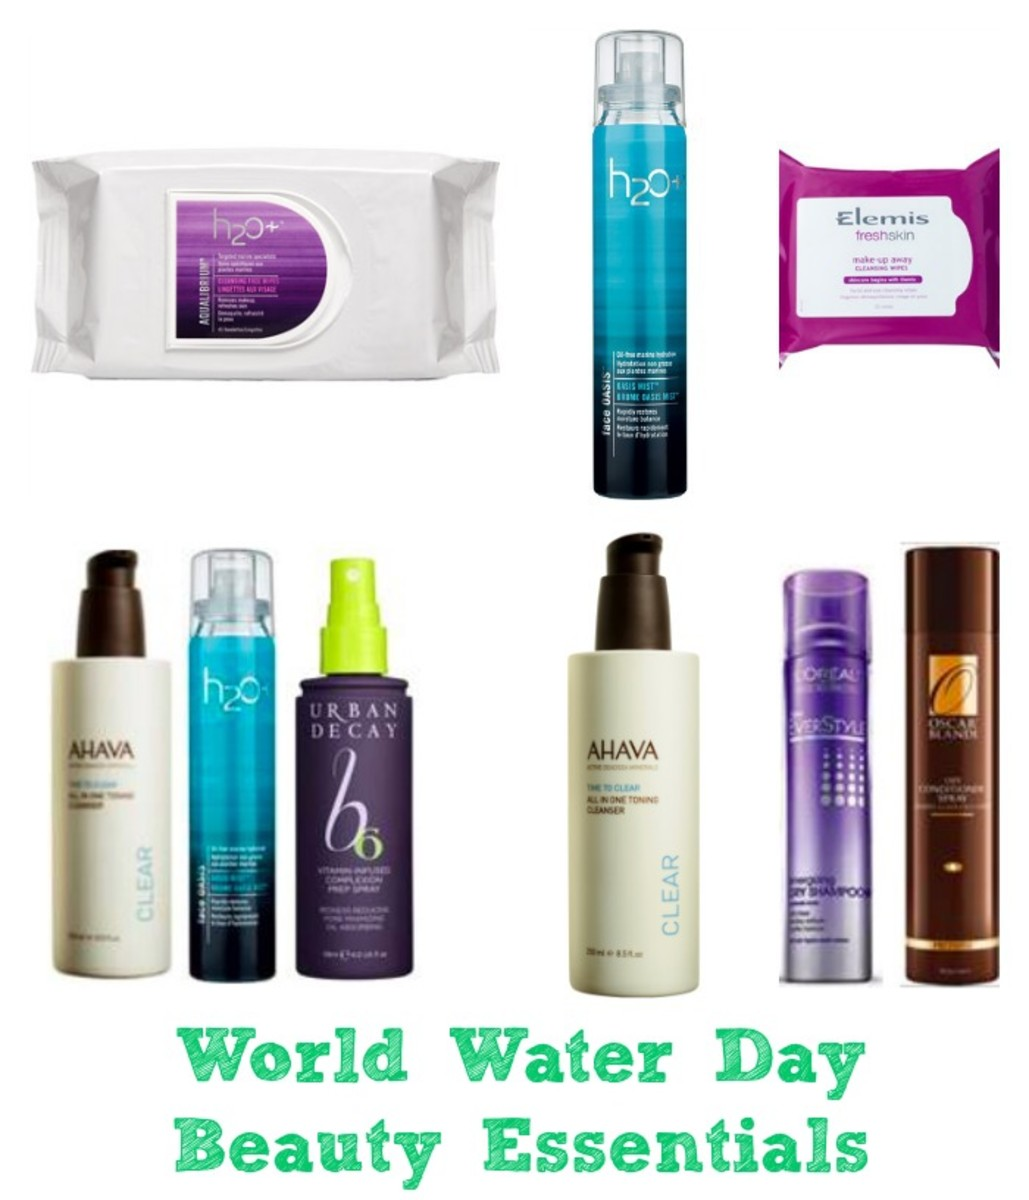 World Water Day Beauty Essentials .jpg.jpg